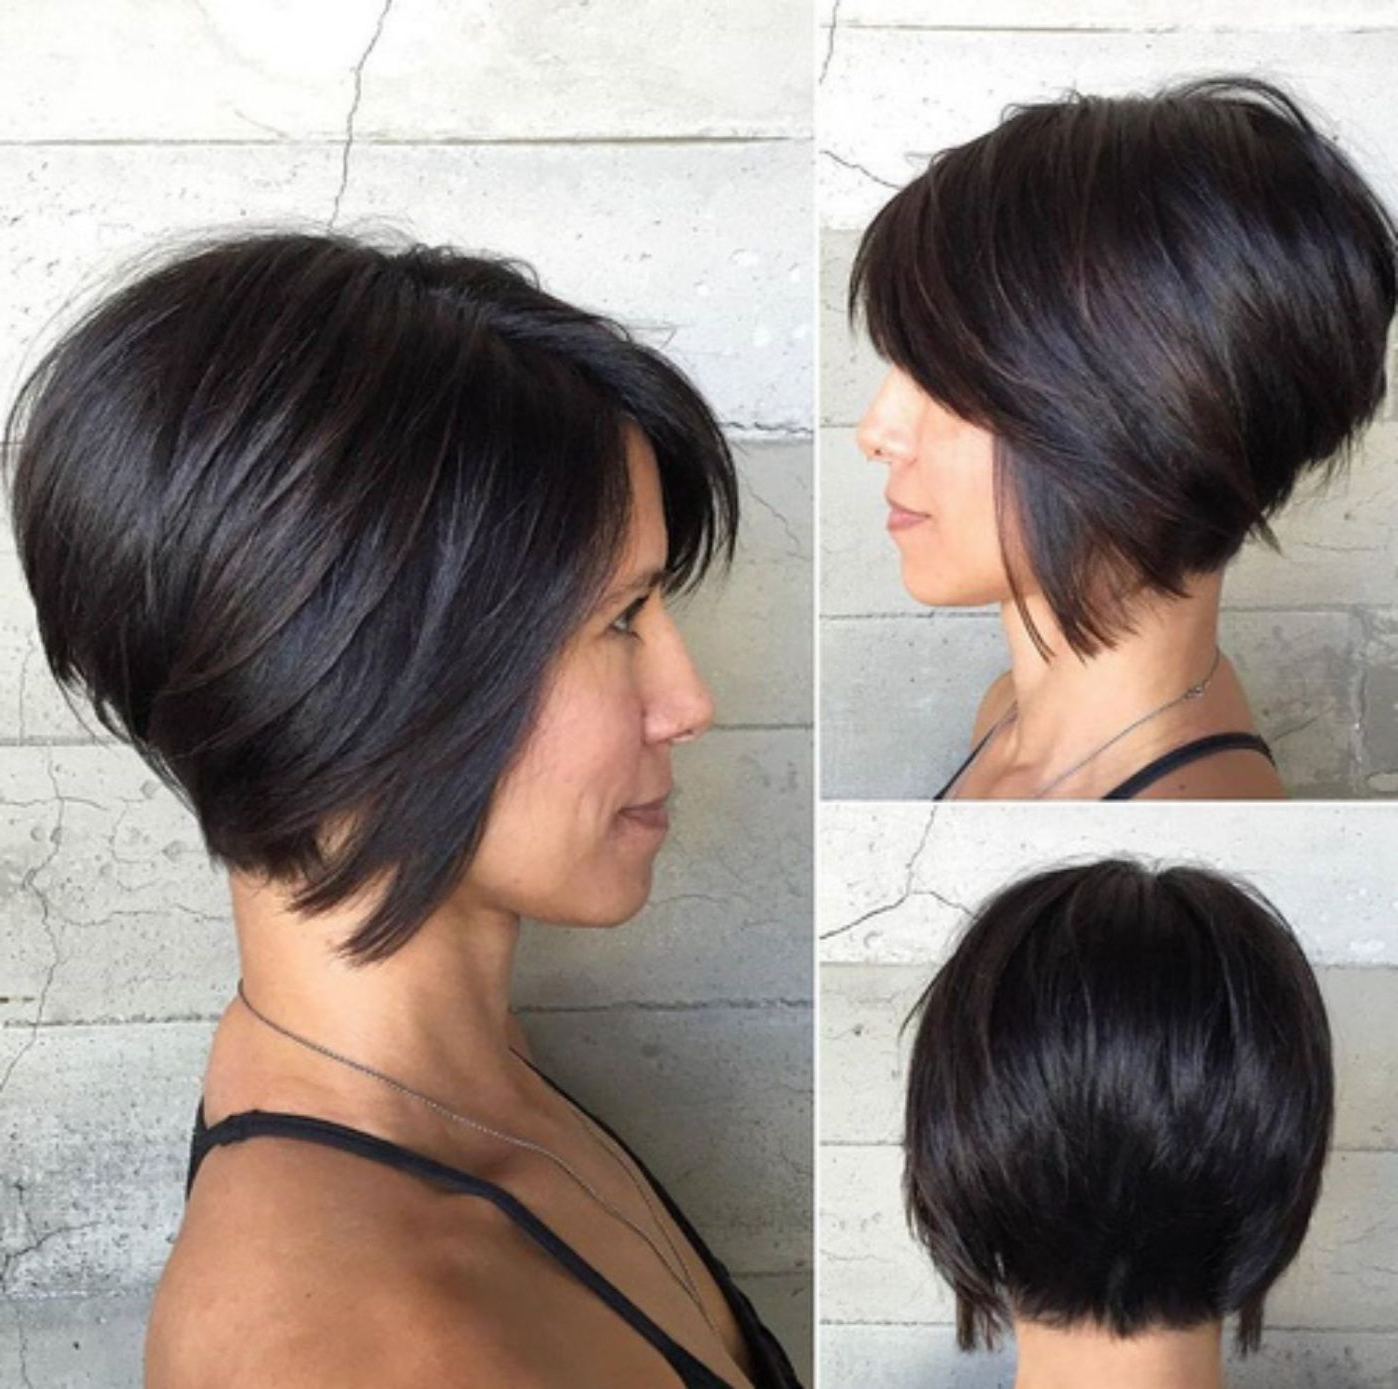 60 Classy Short Haircuts And Hairstyles For Thick Hair In 2018 Inside Black Curly Inverted Bob Hairstyles For Thick Hair (View 19 of 25)